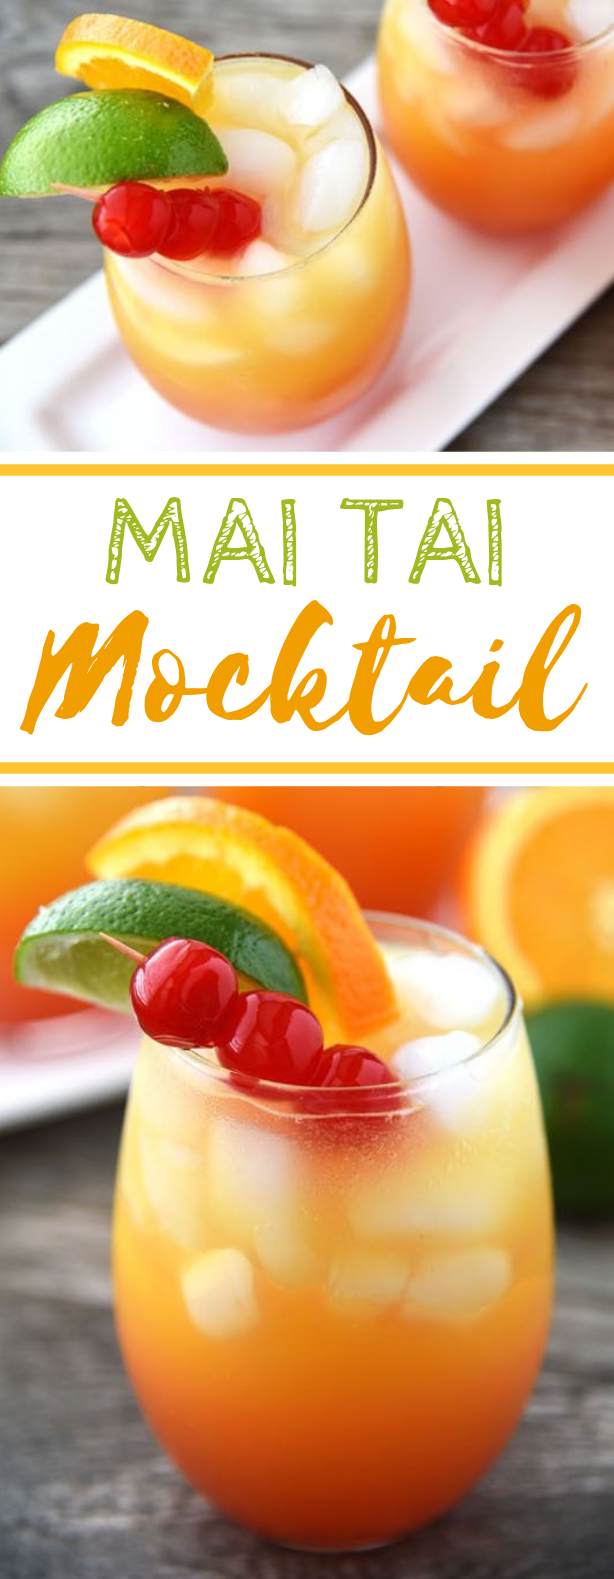 Mai Tai Mocktail #drink #nonalcohol